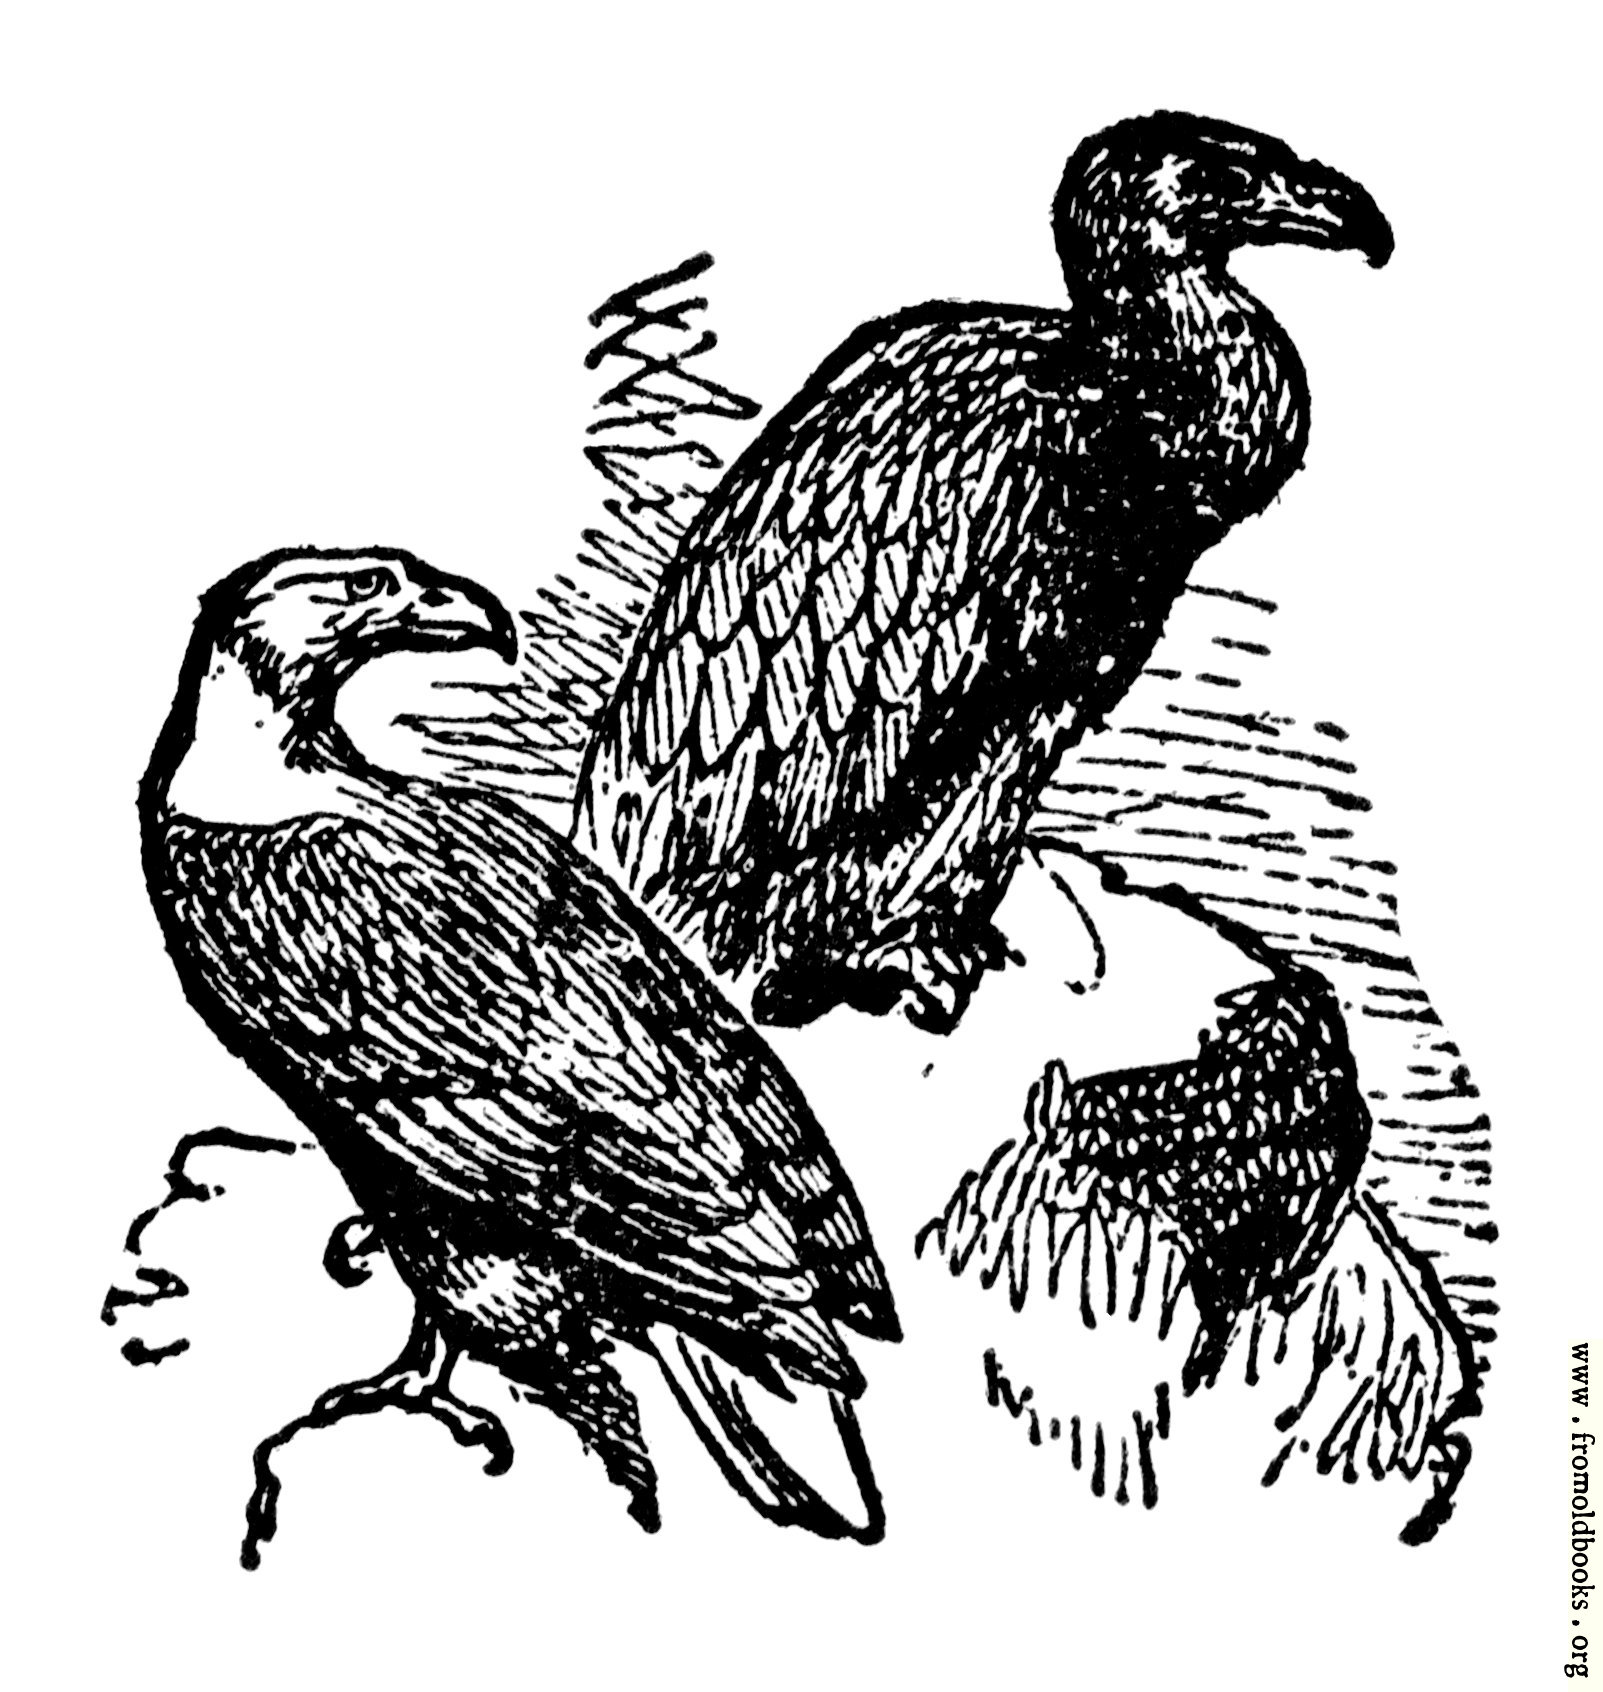 ares vulture images reverse search